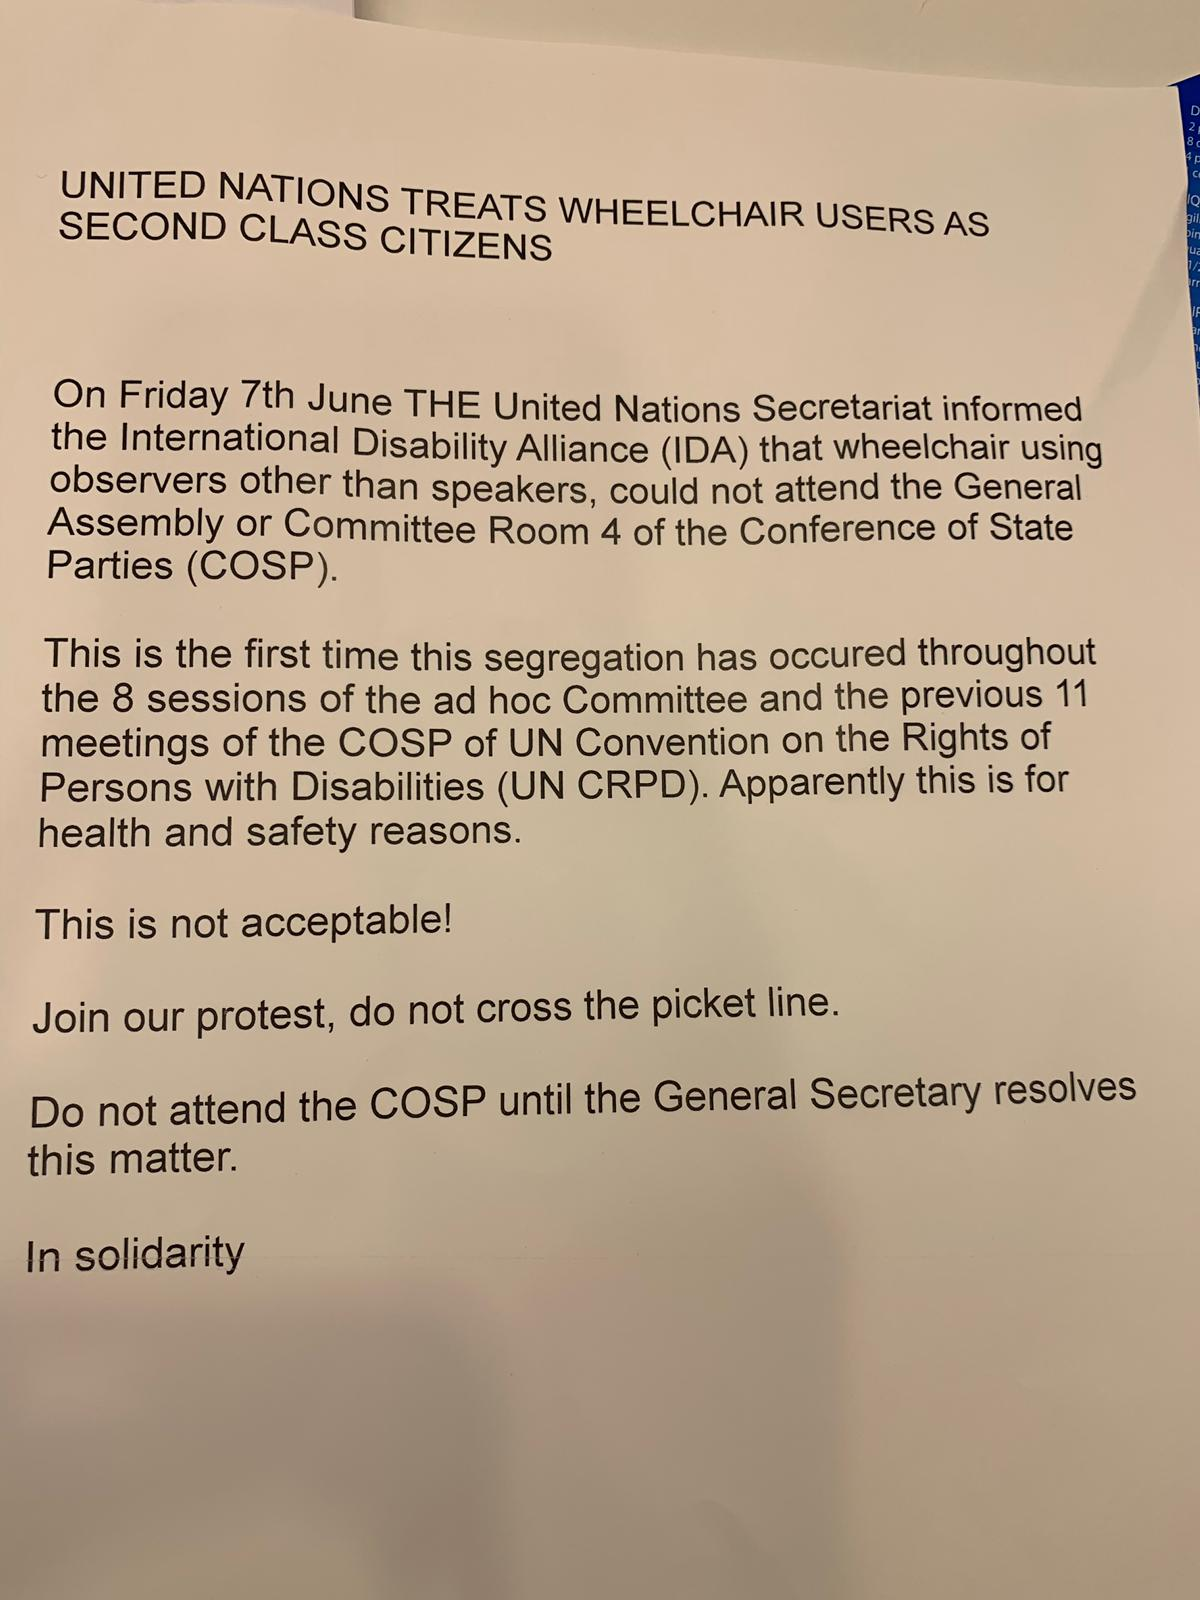 Leaflet given out at UN Picket 11th June 2019